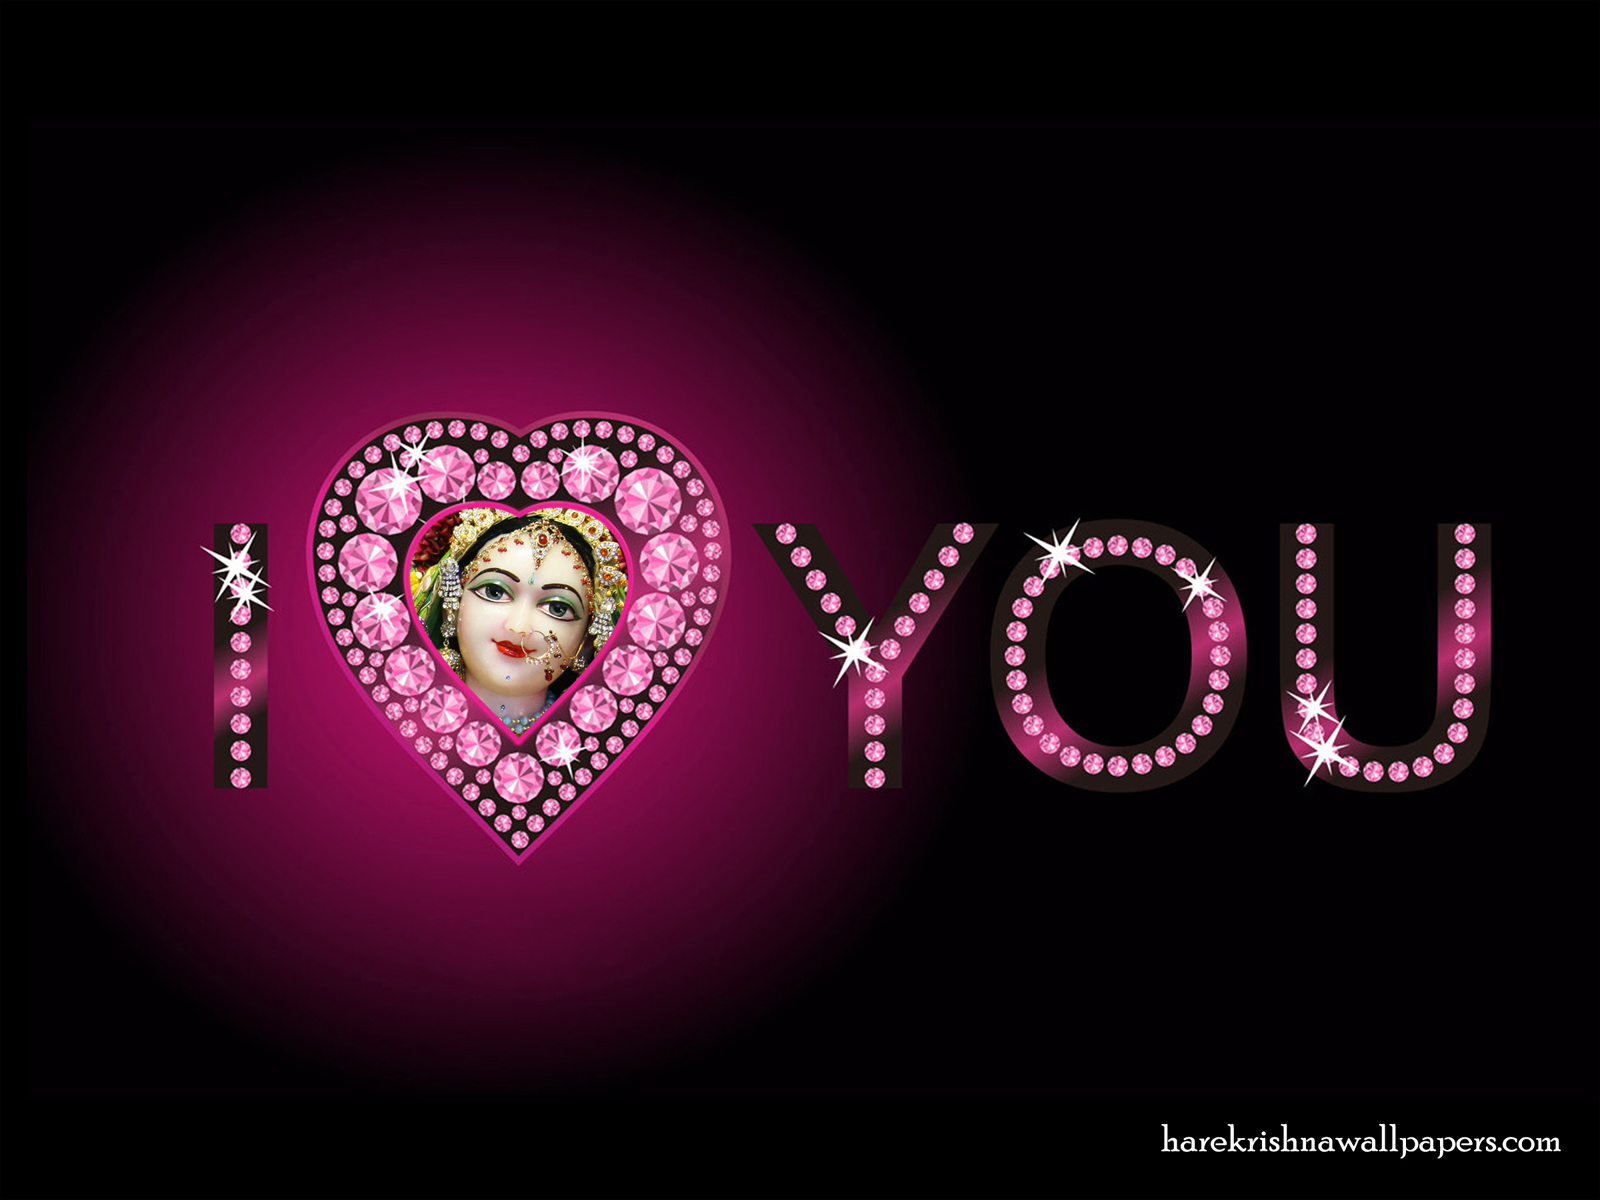 I Love You Radharani Wallpaper (015) Size1600x1200 Download